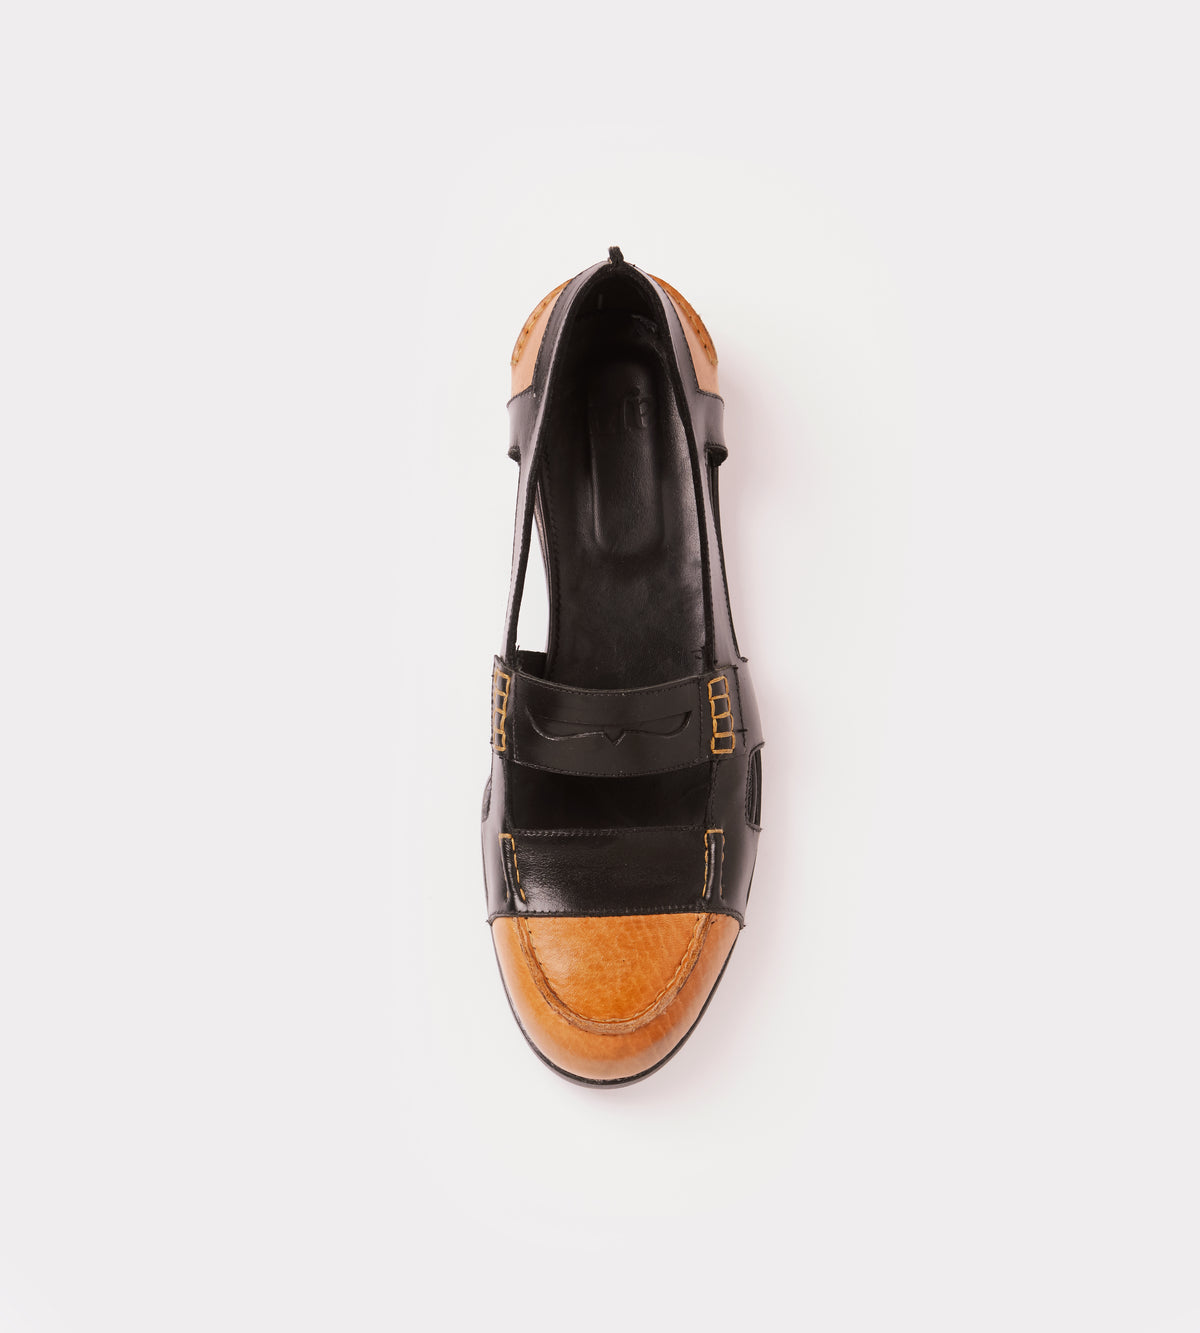 Black-natural calf leather open moccasin top view